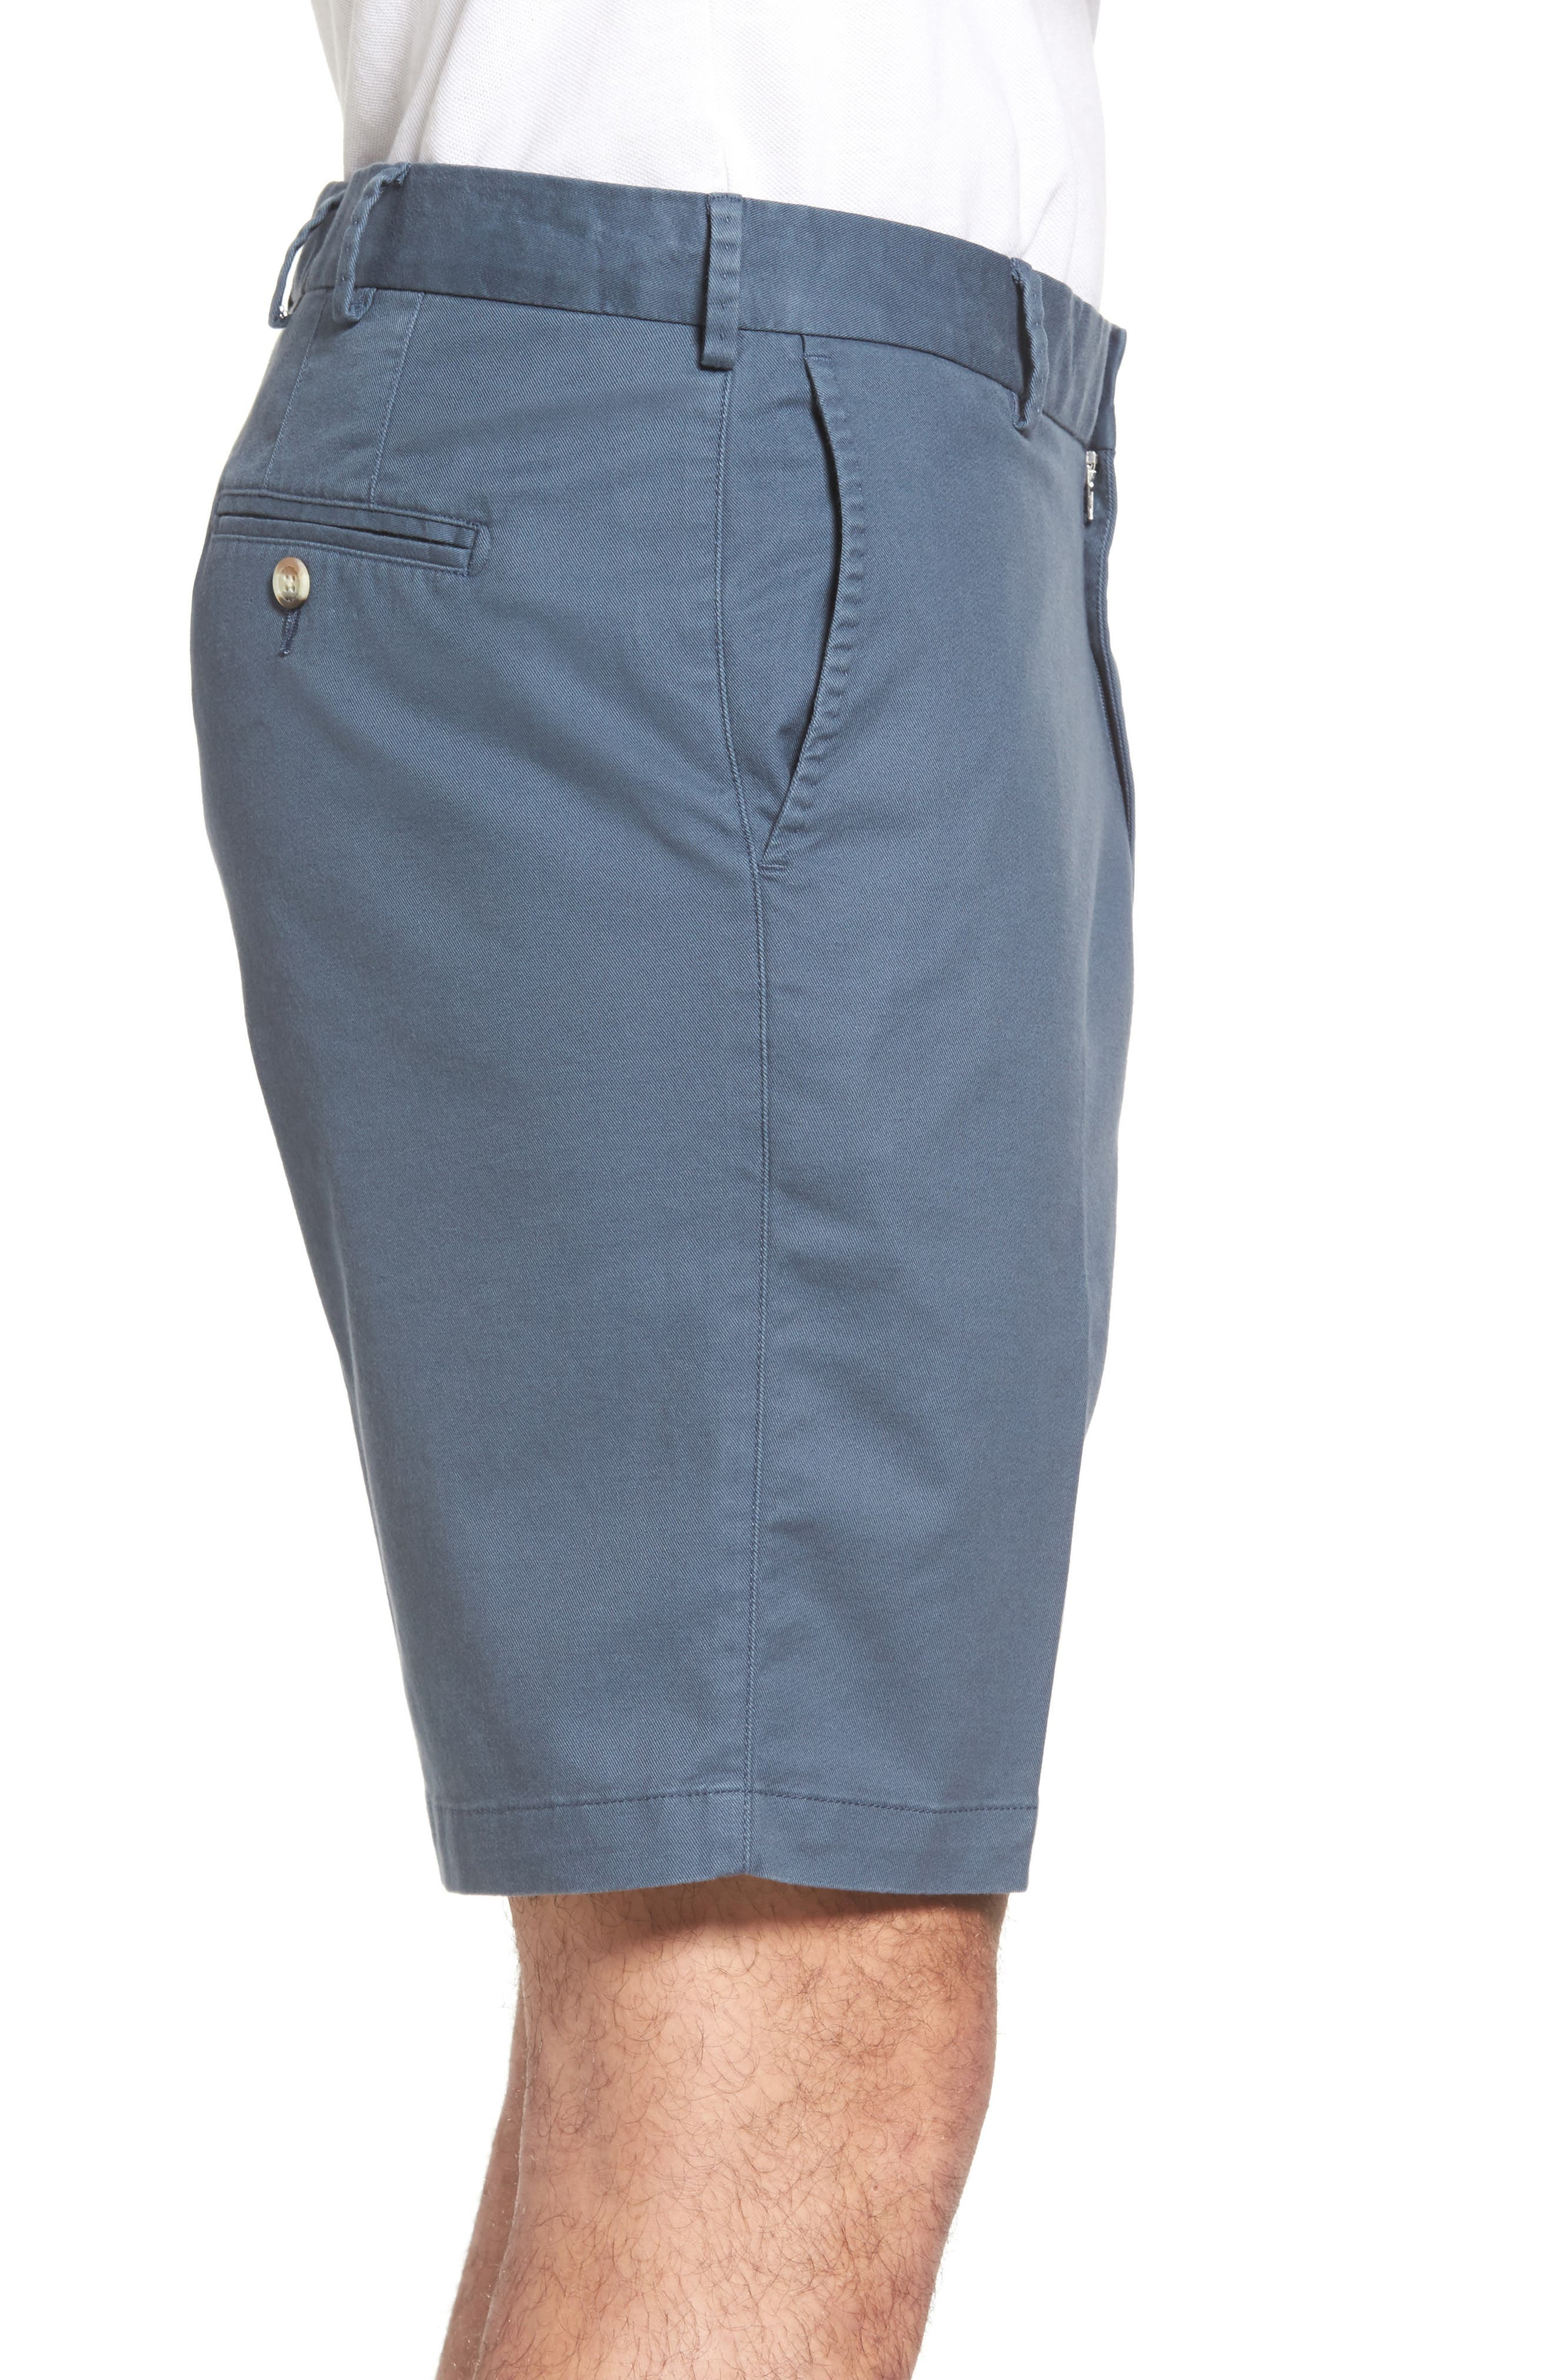 Soft Touch Stretch Twill Shorts,                             Alternate thumbnail 3, color,                             NAVY